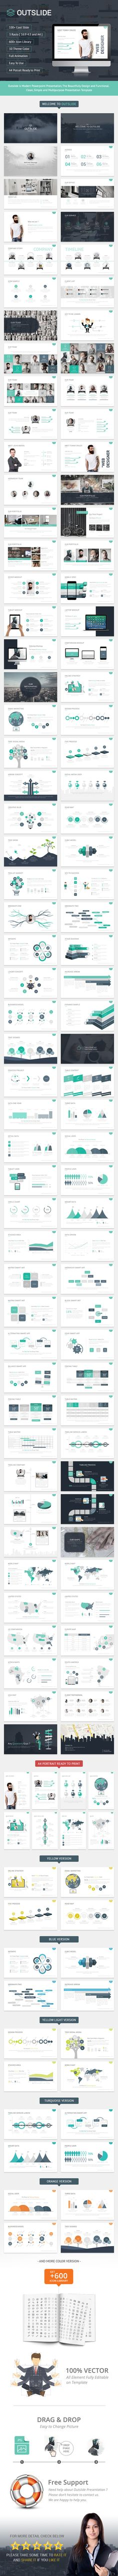 OUTSLIDE - PowerPoint Presentation Template. Download here: http://graphicriver.net/item/outslide-presentation-template/15832653?ref=ksioks